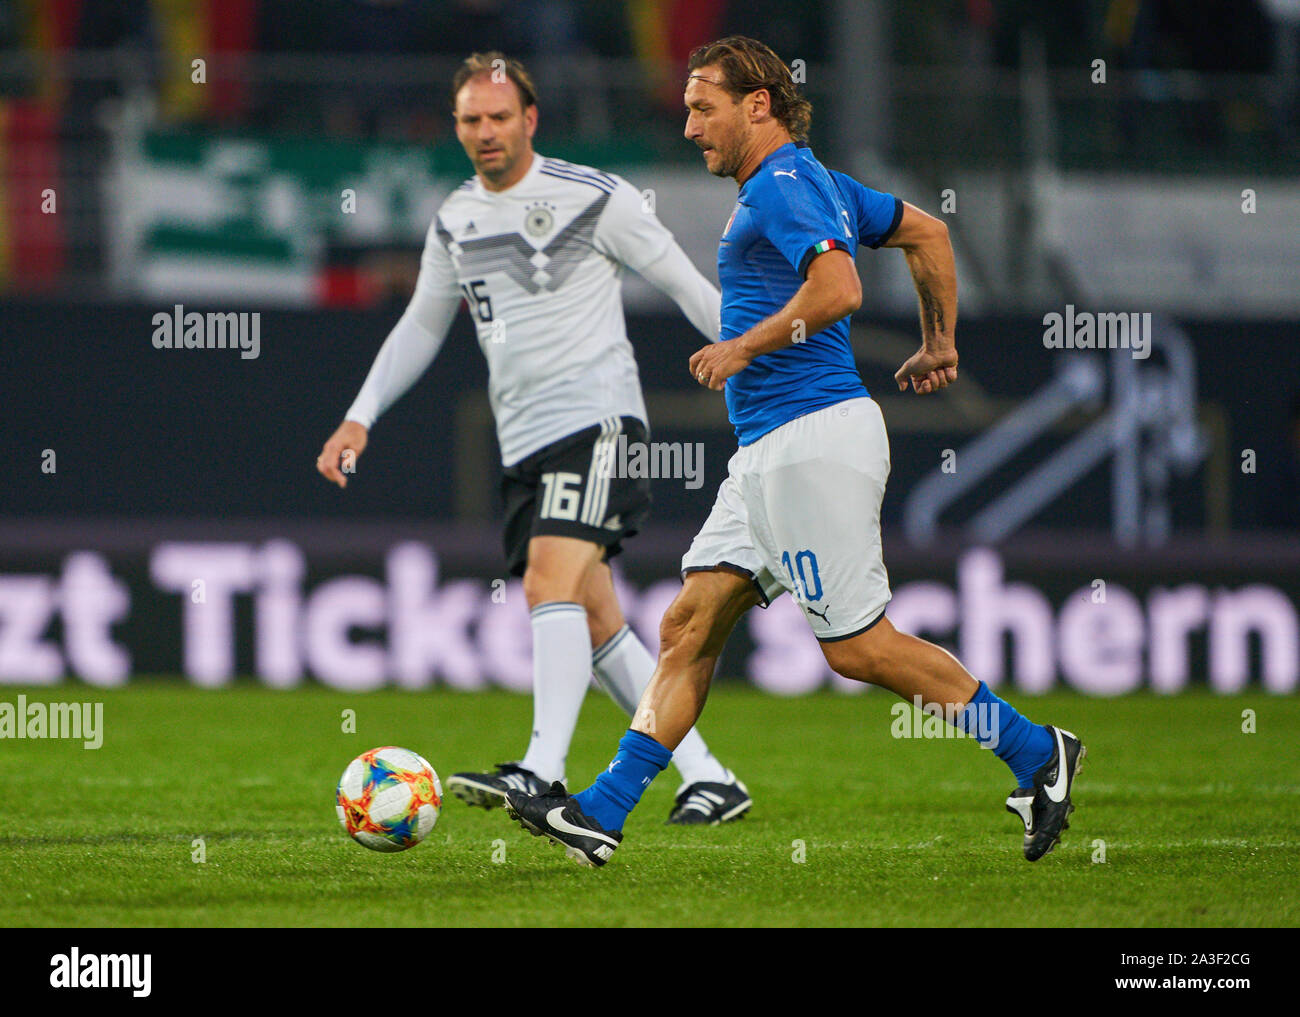 Fürth, Germany, October 07, 2019 Francesco TOTTI, ITA All Stars Nr. 10  compete for the ball, tackling, duel, header, zweikampf, action, fight against Jens NOWOTNY, DFB All Stars Nr. 16  GERMANY ALL-STARS - ITALY AZZURRI   ALL STARS 3-3, German Soccer League , Fürth, Germany,  October 07, 2019  Season 2019/2020 © Peter Schatz / Alamy Live News Stock Photo